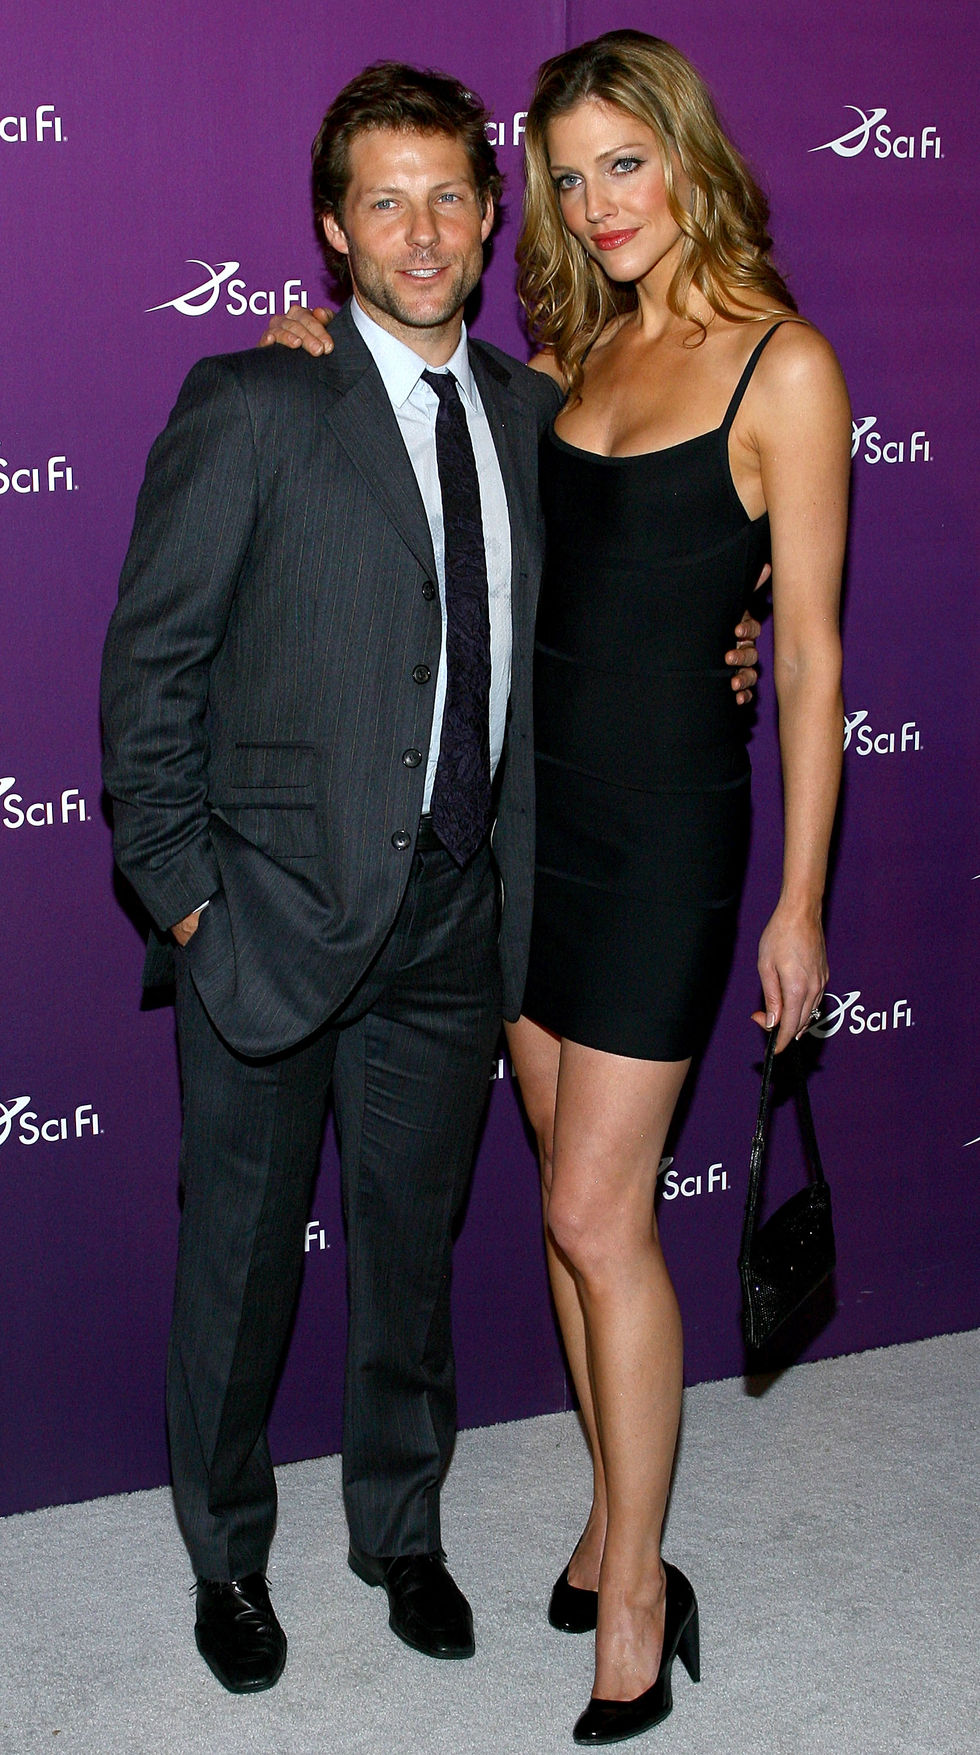 tricia-helfer-sci-fi-channel-2008-upfront-party-in-new-york-city-01